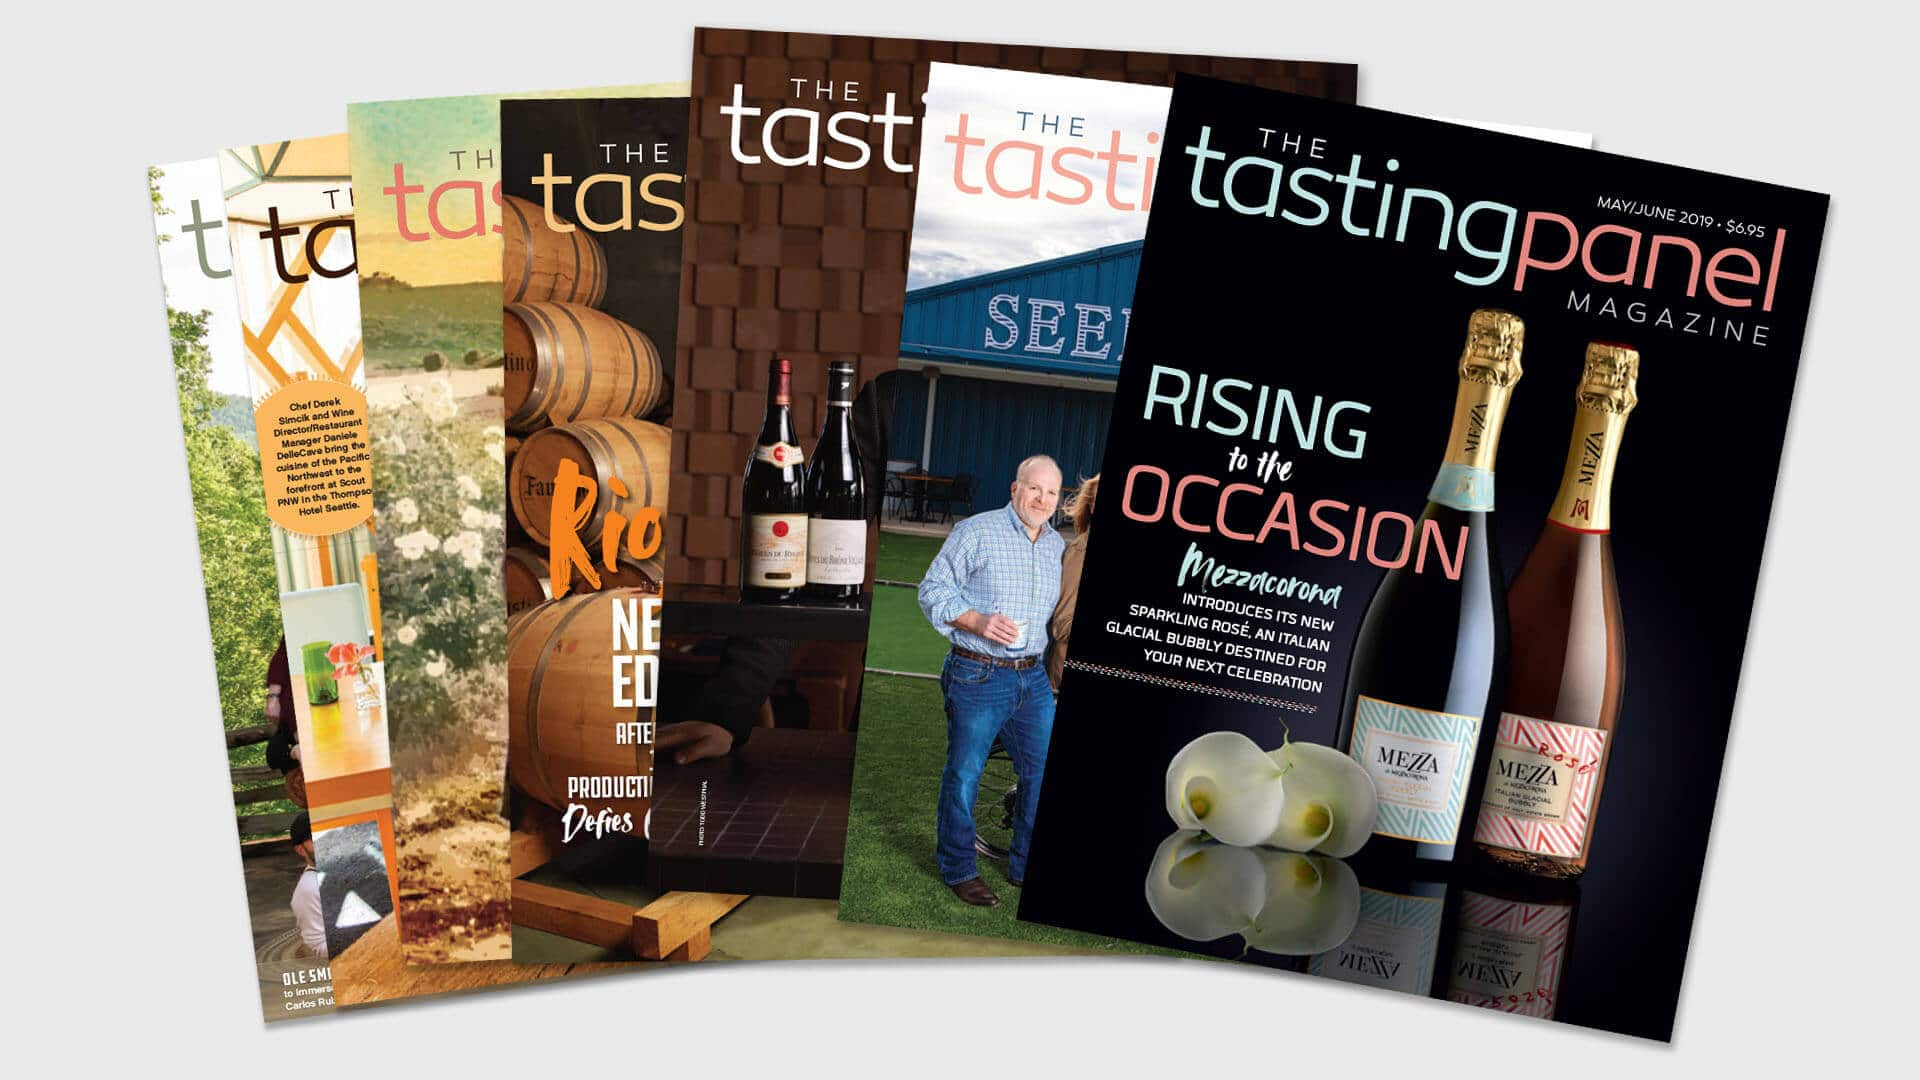 The Tasting Panel Magazine covers